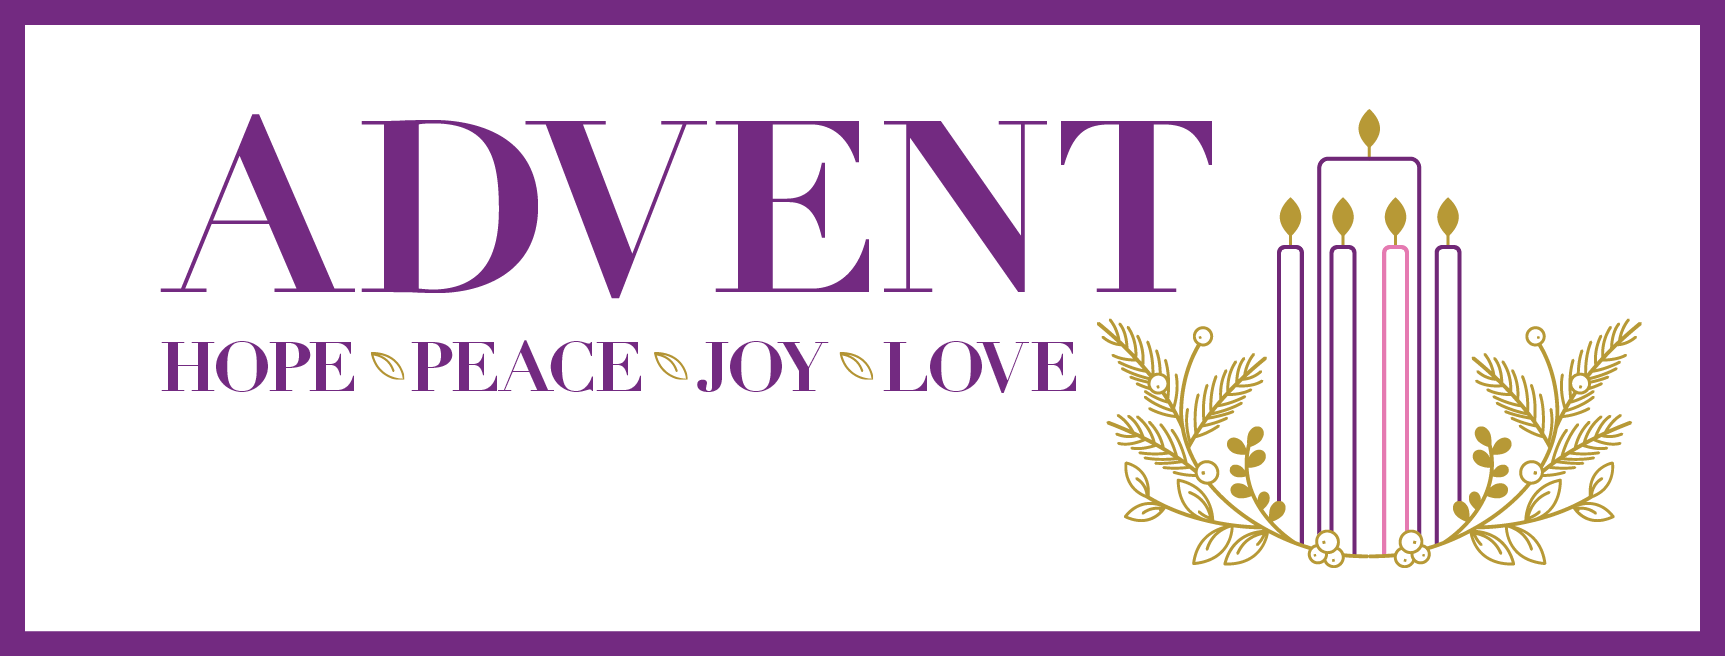 Advent clipart peace. Worship resources i am